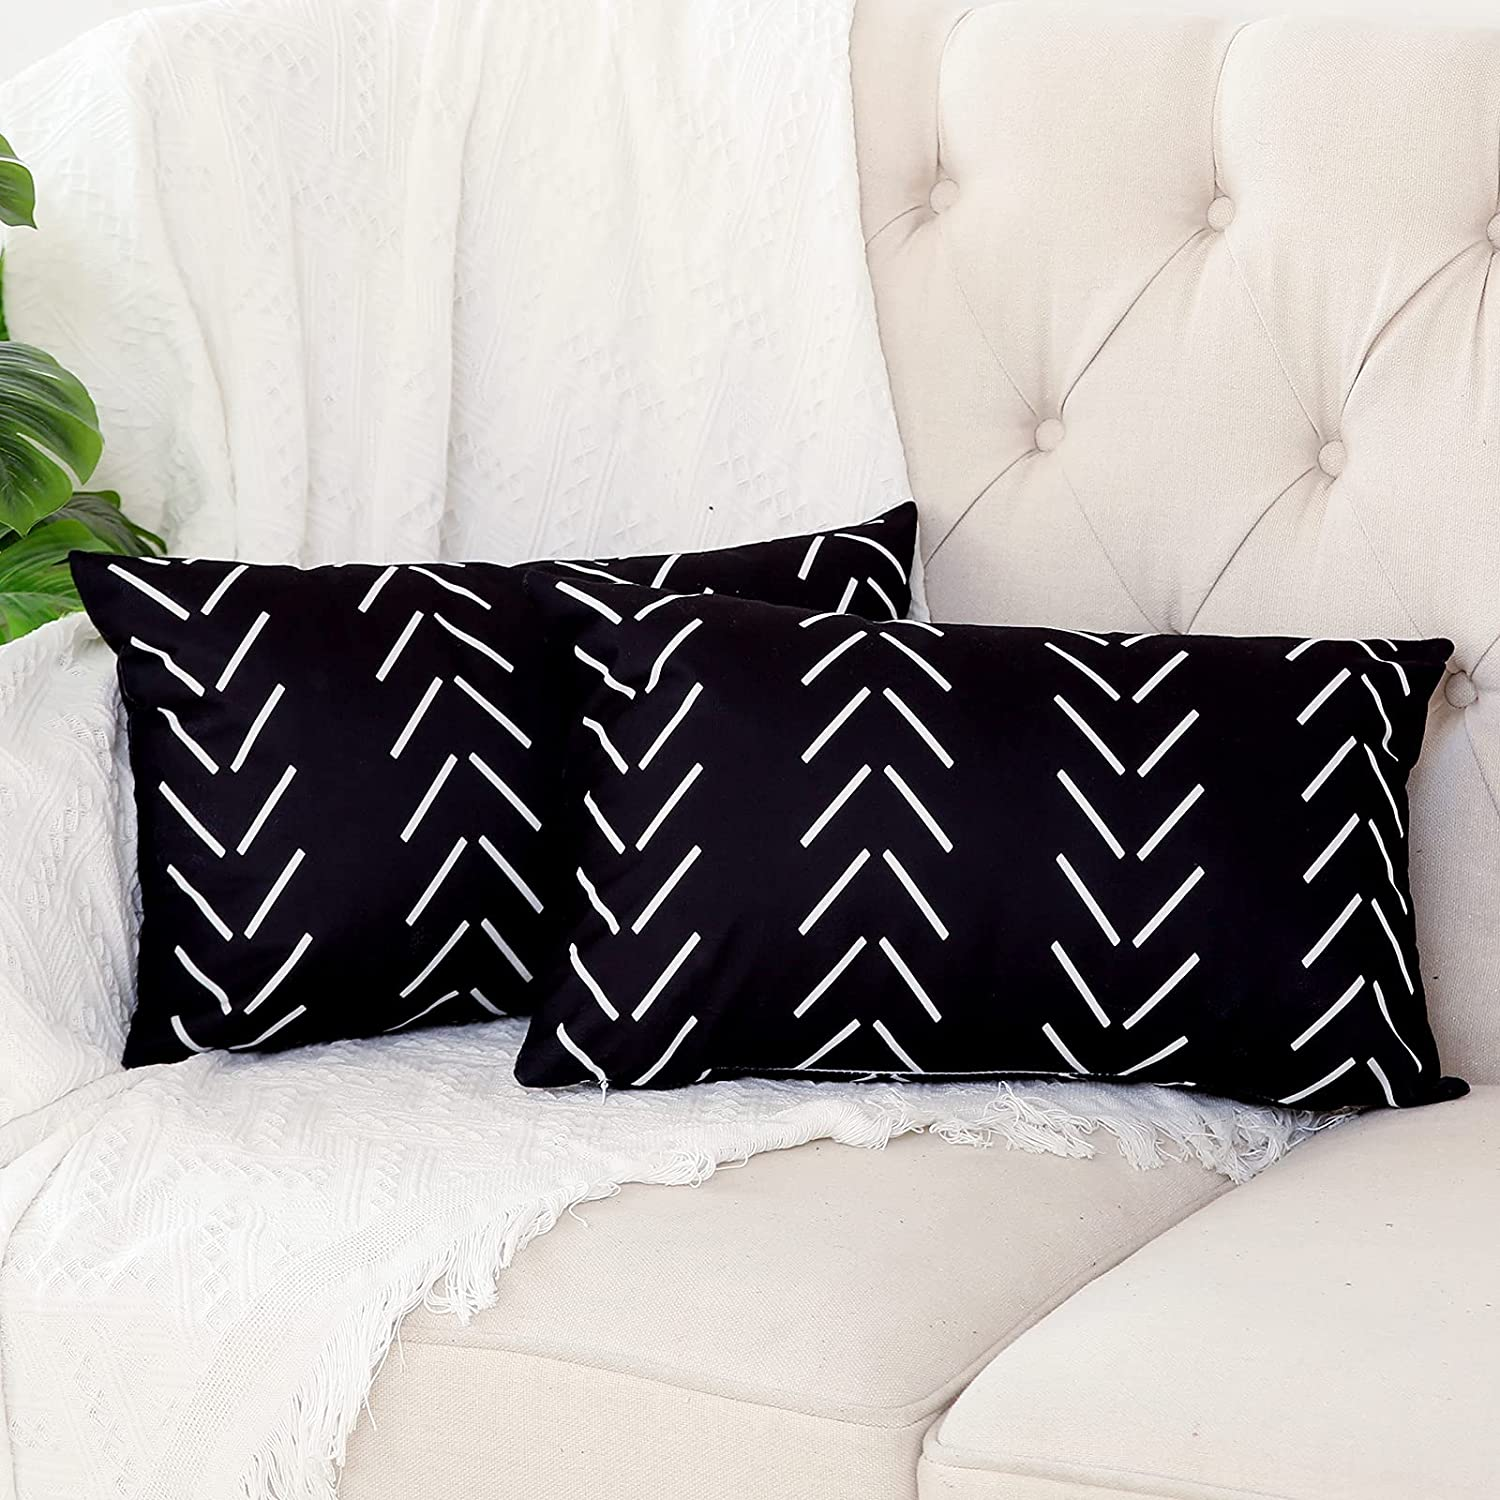 Kiuree Set of 2 Black and White Pillow Covers 12 x 20 inches Boho Aztec Polyester Blend Lumbar Decorative Throw Pillow Covers for Sofa Couch Bed Decor(Black)